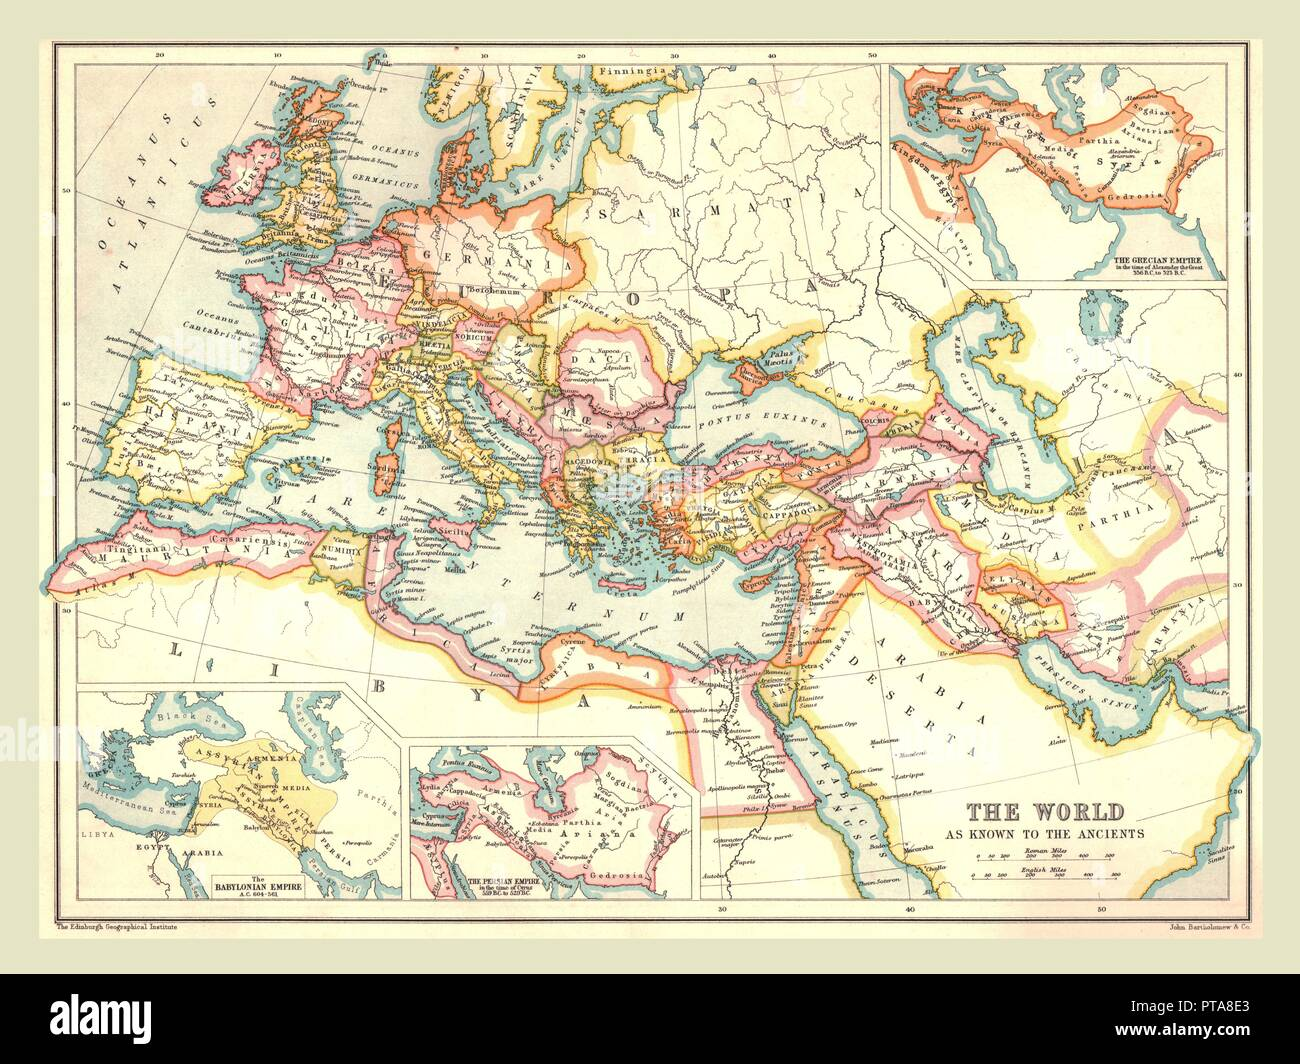 Ancient Roman Map Of The World.Map Of The Ancient World 1902 Showing Europe North Africa And